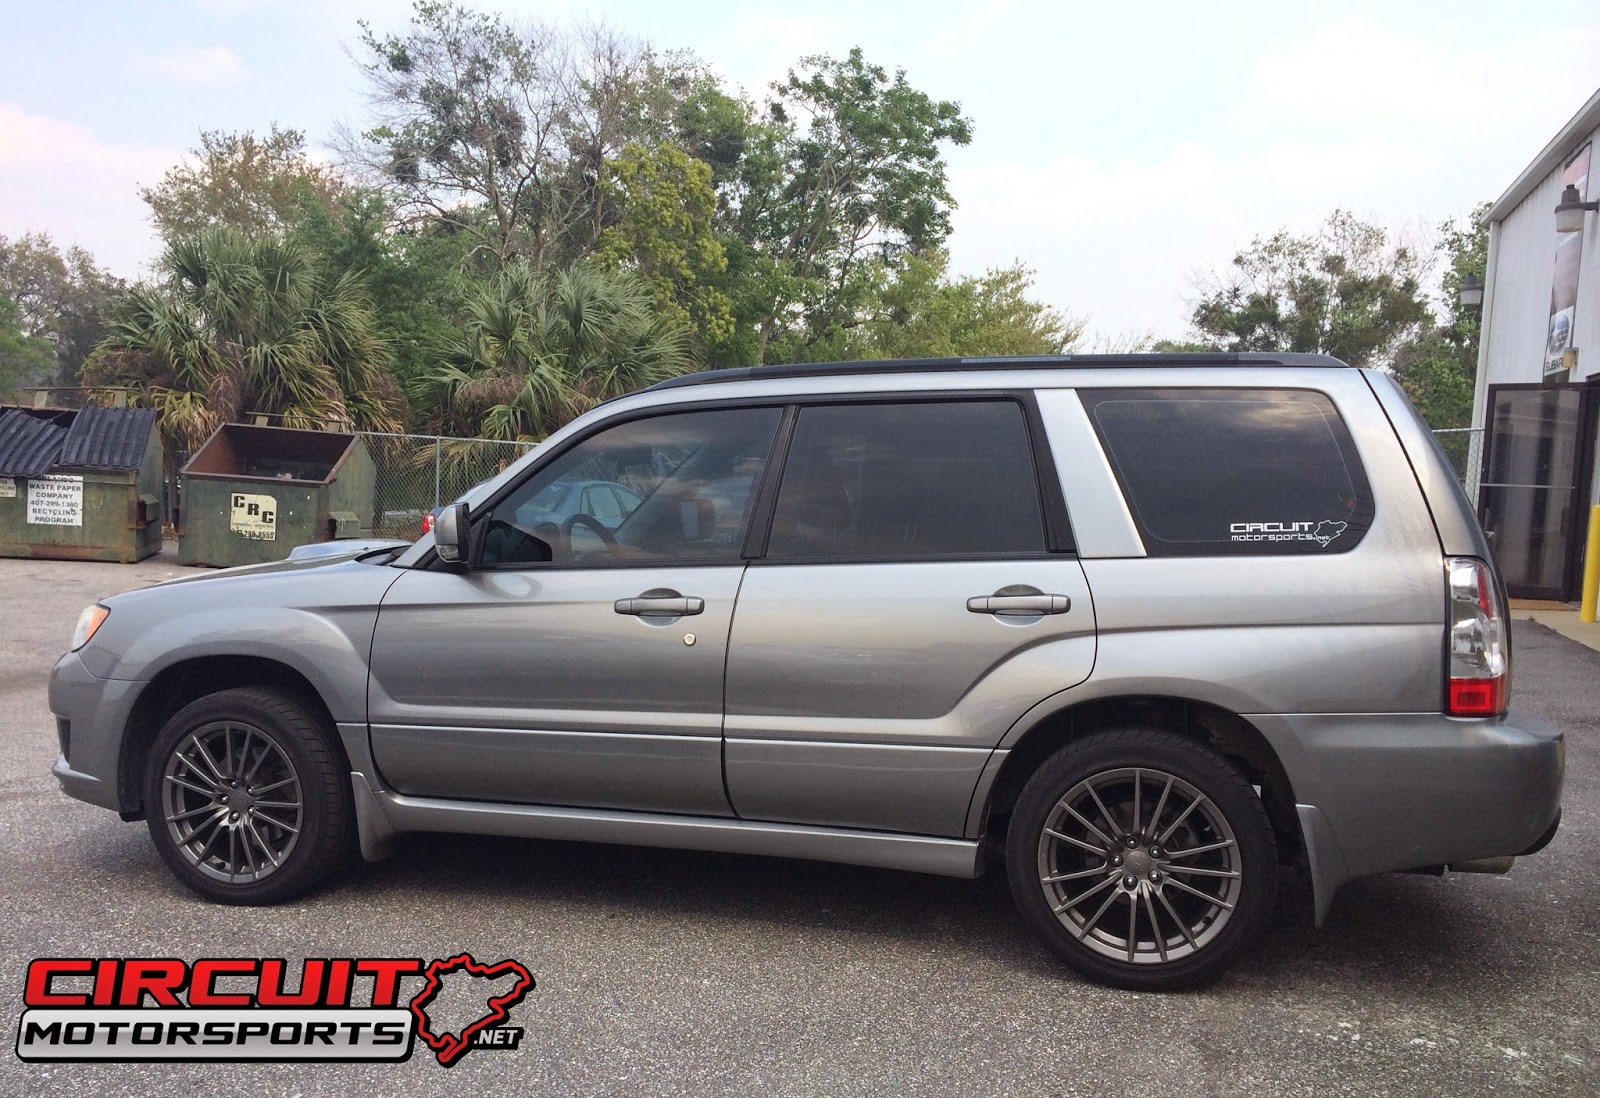 Aftermarket Wheels Subaru Forester 1998 Outback Owners Manual Pictures